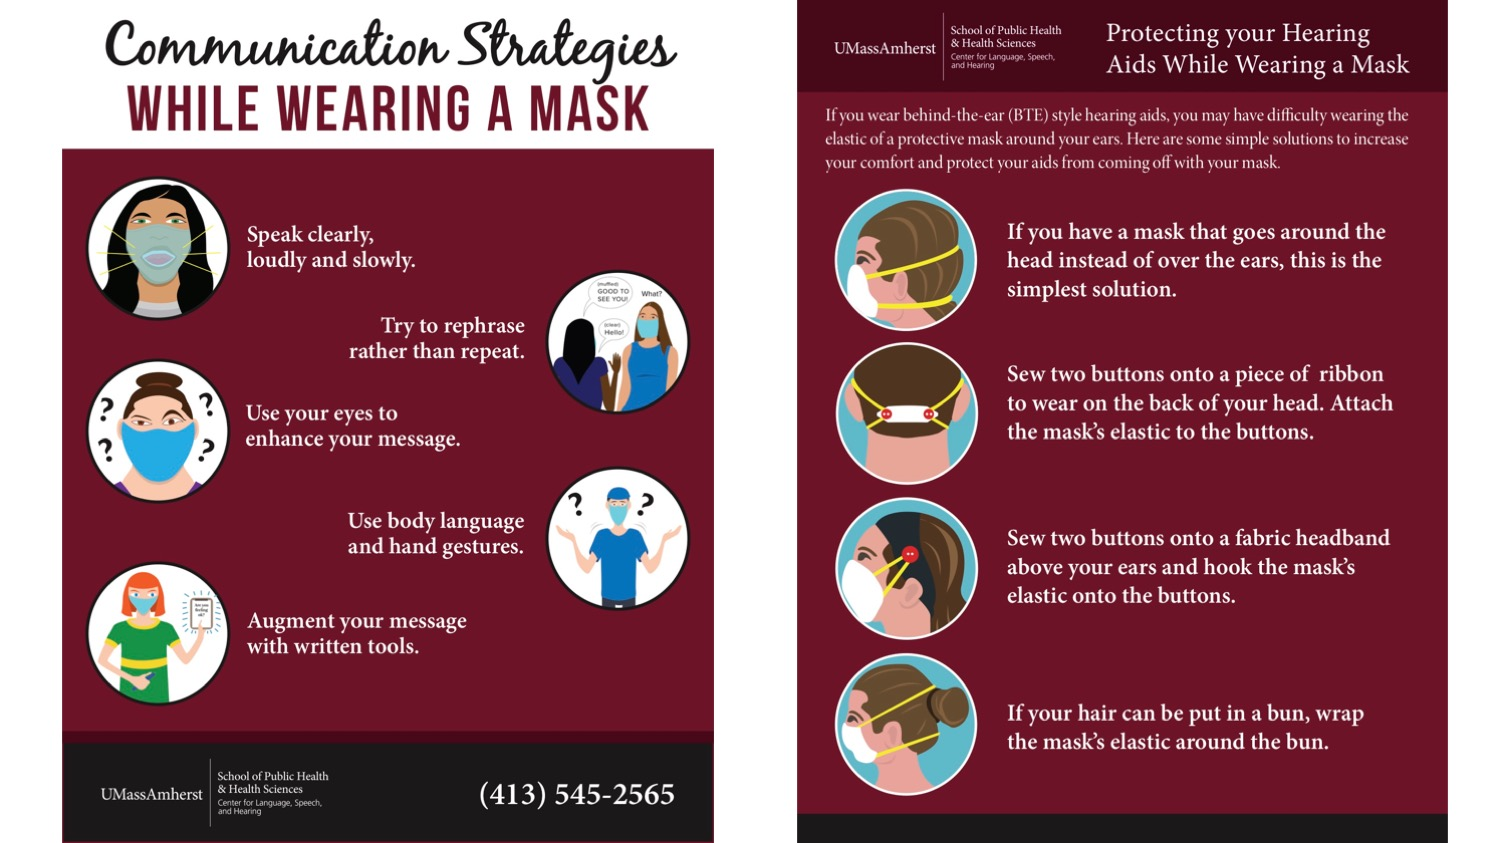 infographics recommend speaking clearly and using body language while wearing a mask, also depict ways to wear a mask so as to not interfere with behind-the-ear hearing aids